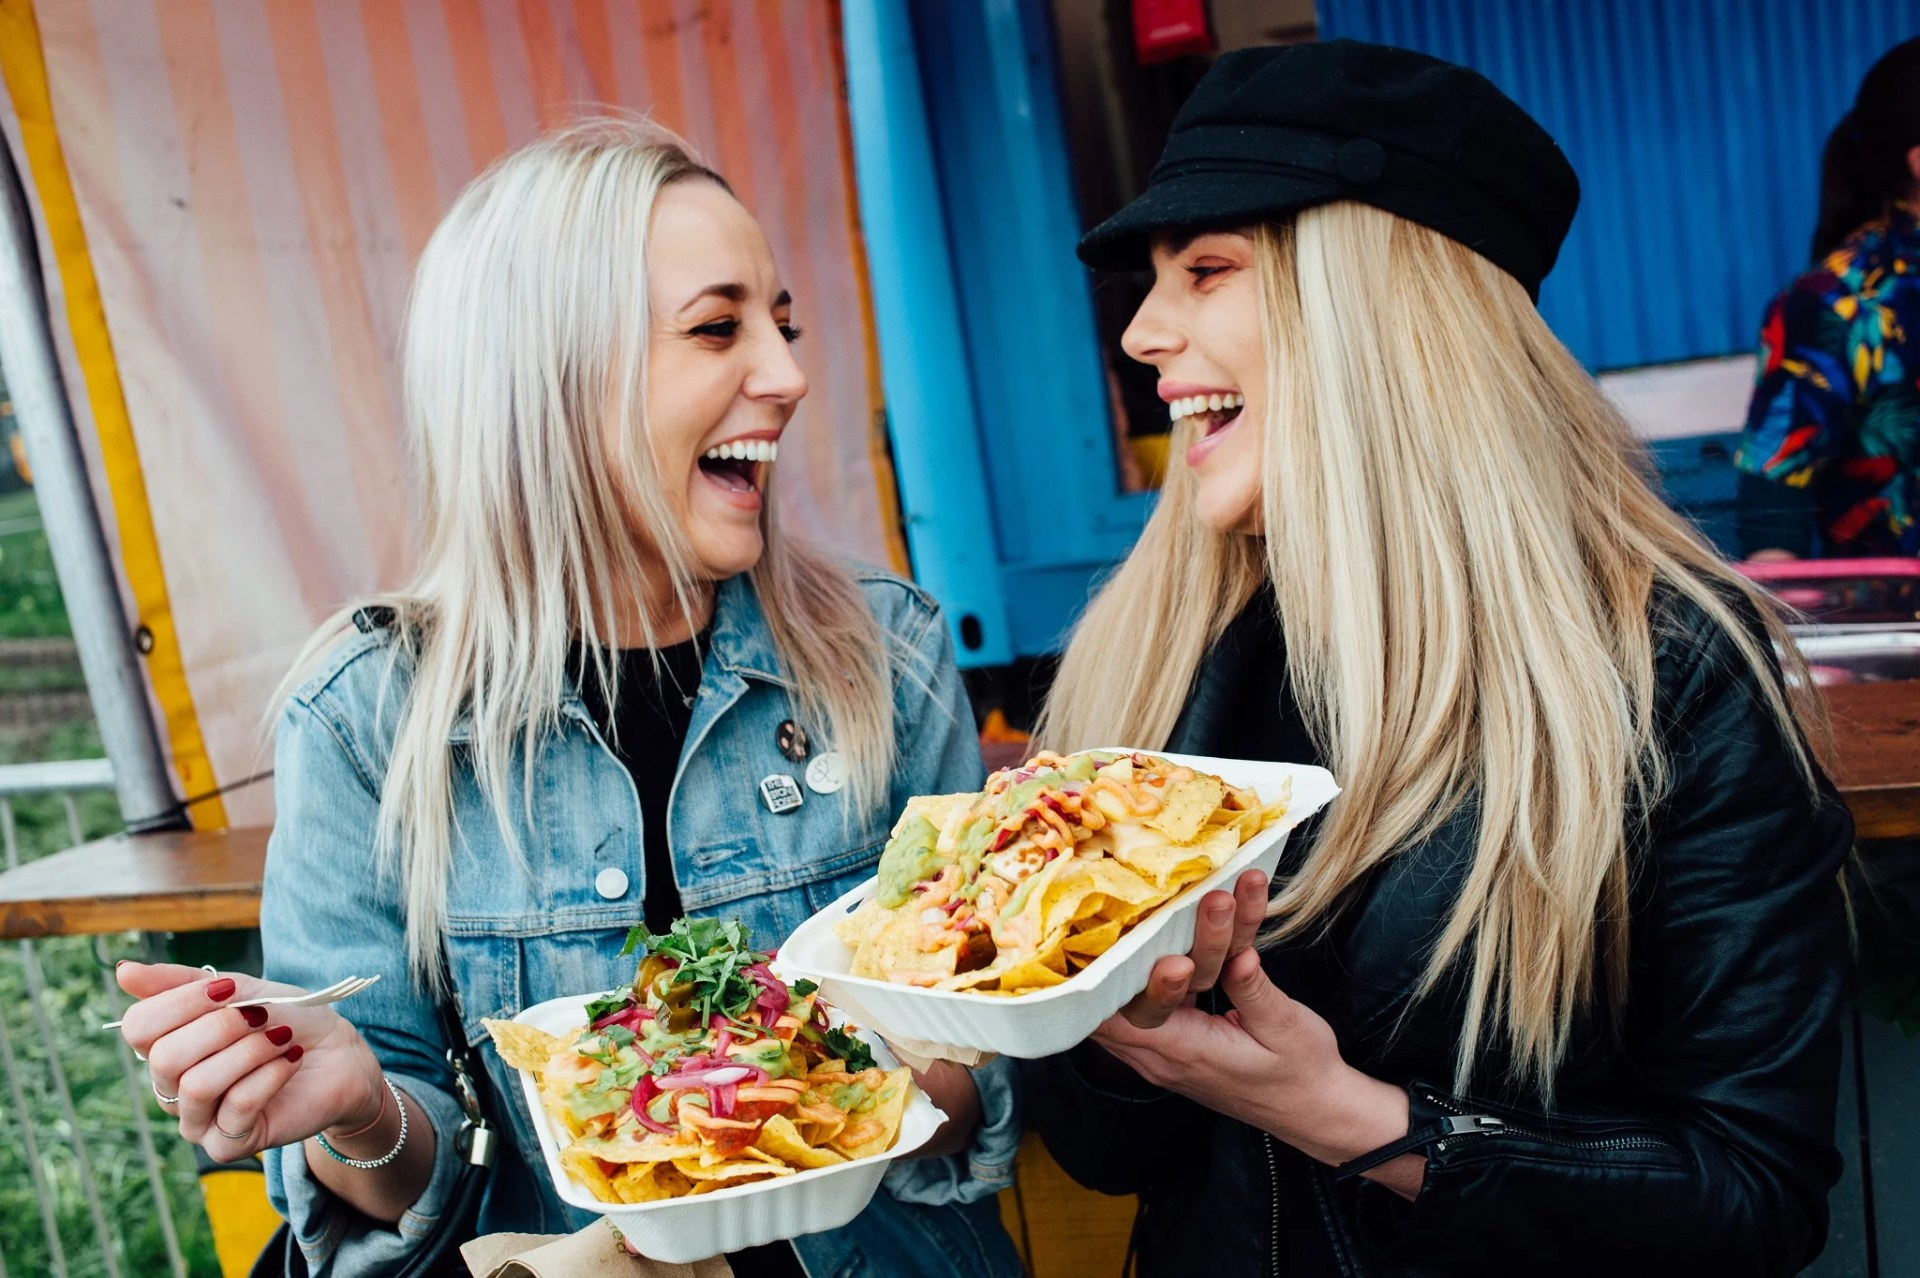 Two women with food